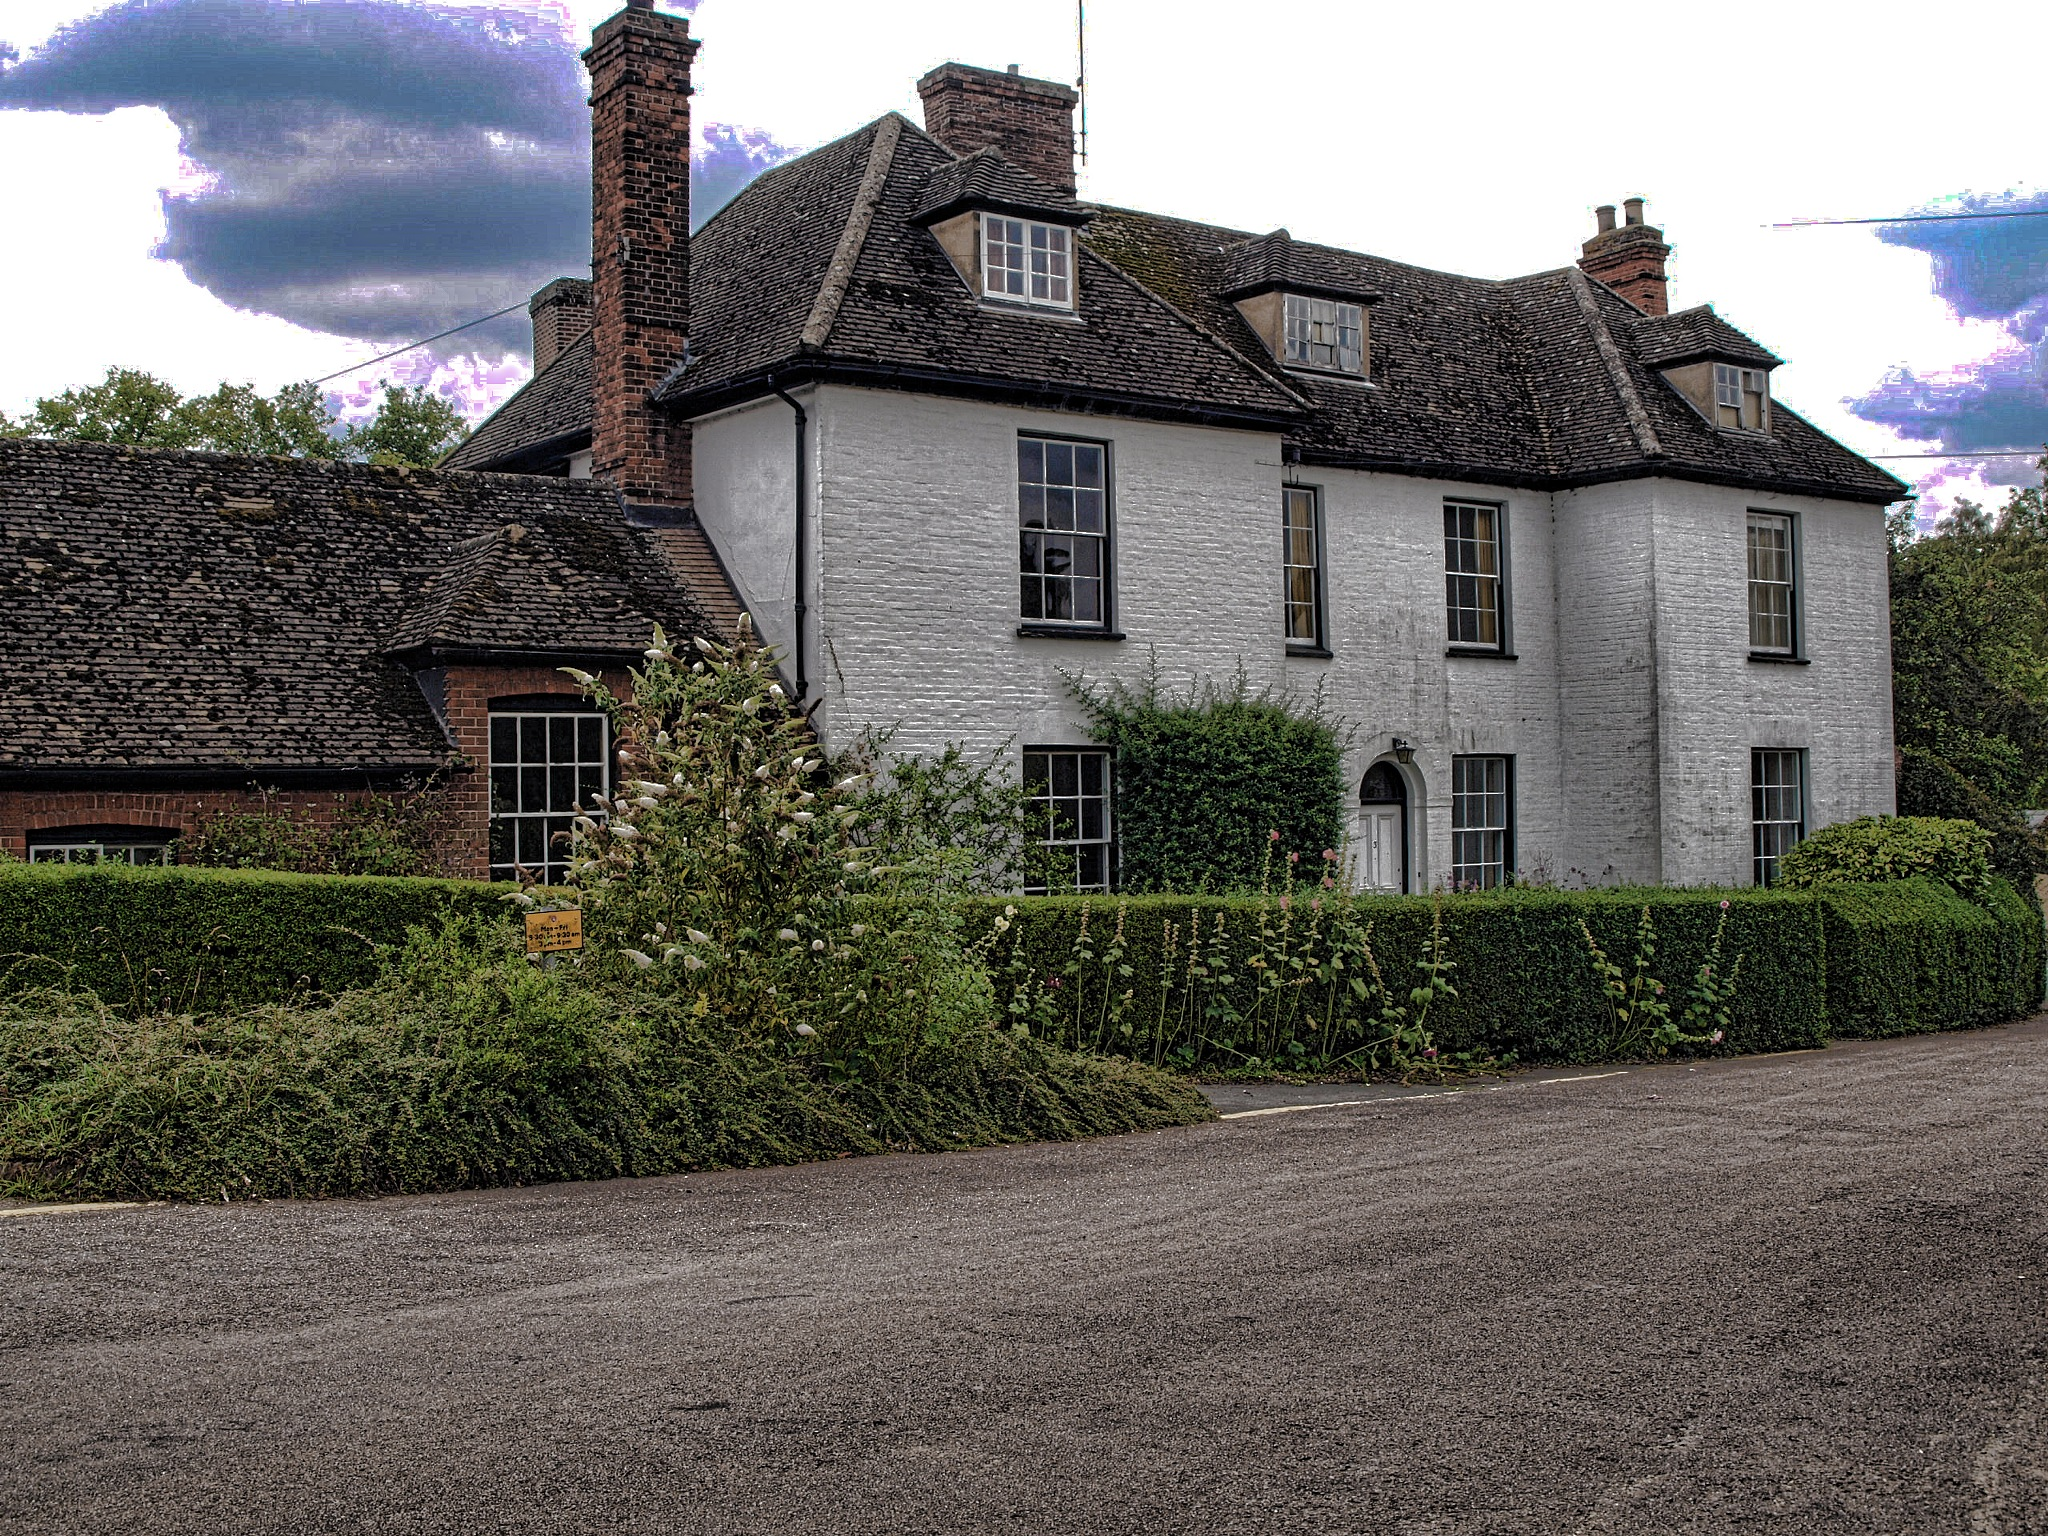 The Old Vicarage by Simon Hill